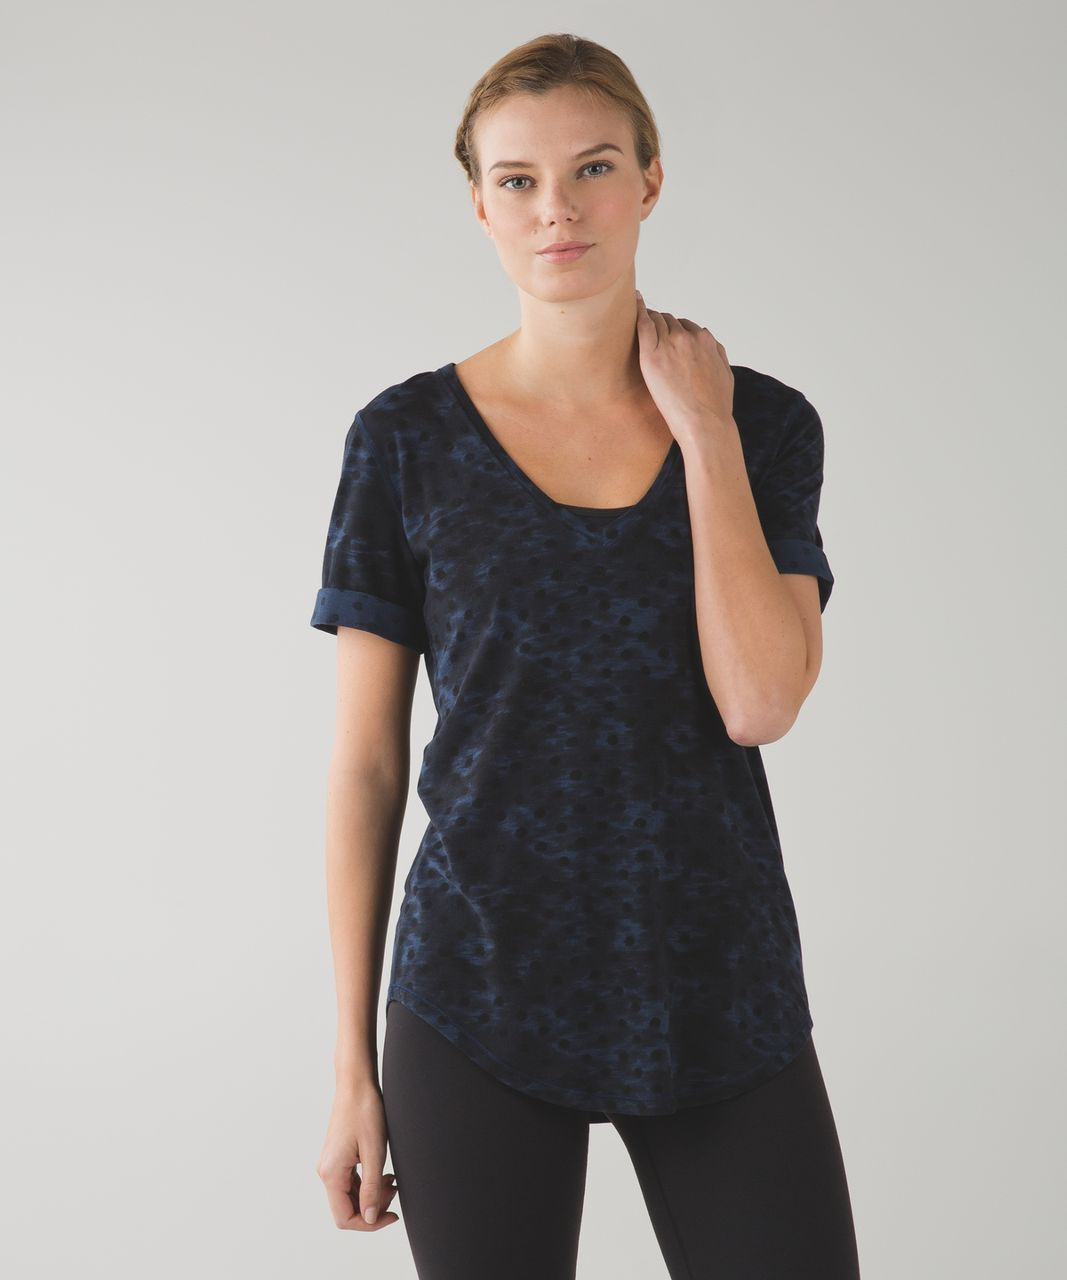 Lululemon Love Tee II - Windy Blooms Deep Navy Black